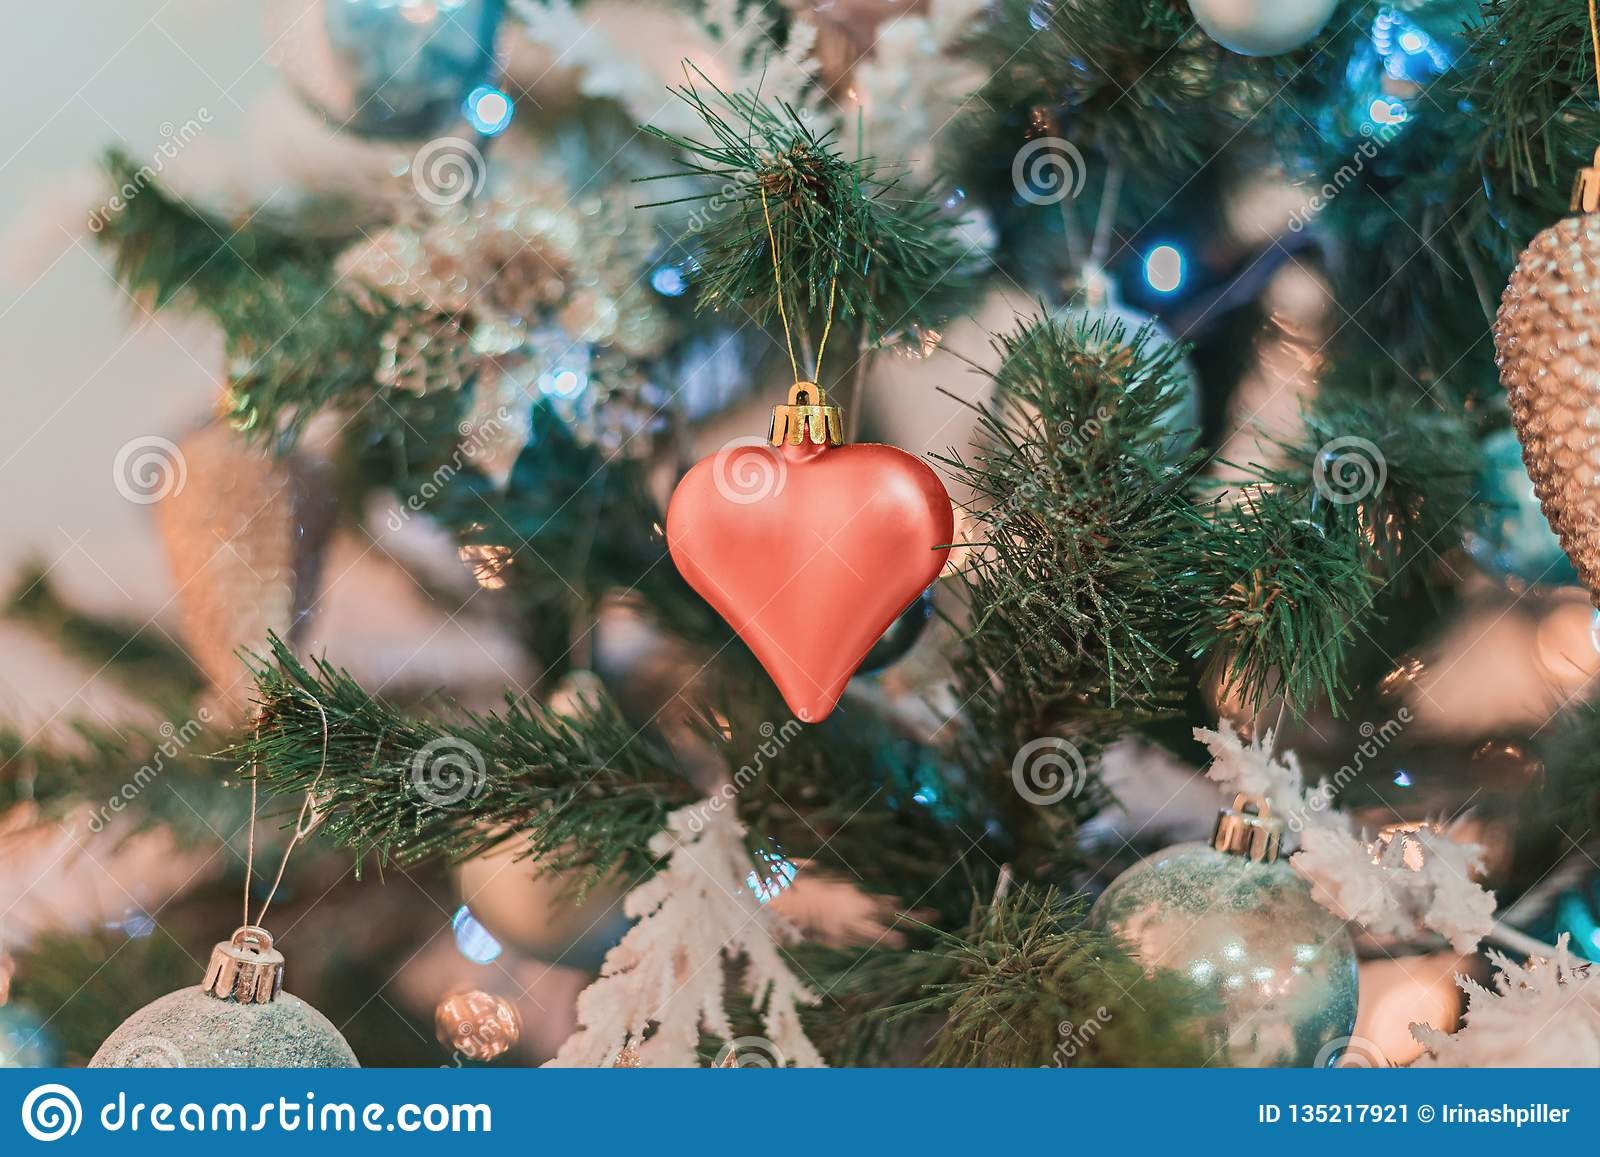 Christmas Tree With Toys In Blue Coral And Golden Color Stock Image Image Of Gold Bauble 135217921